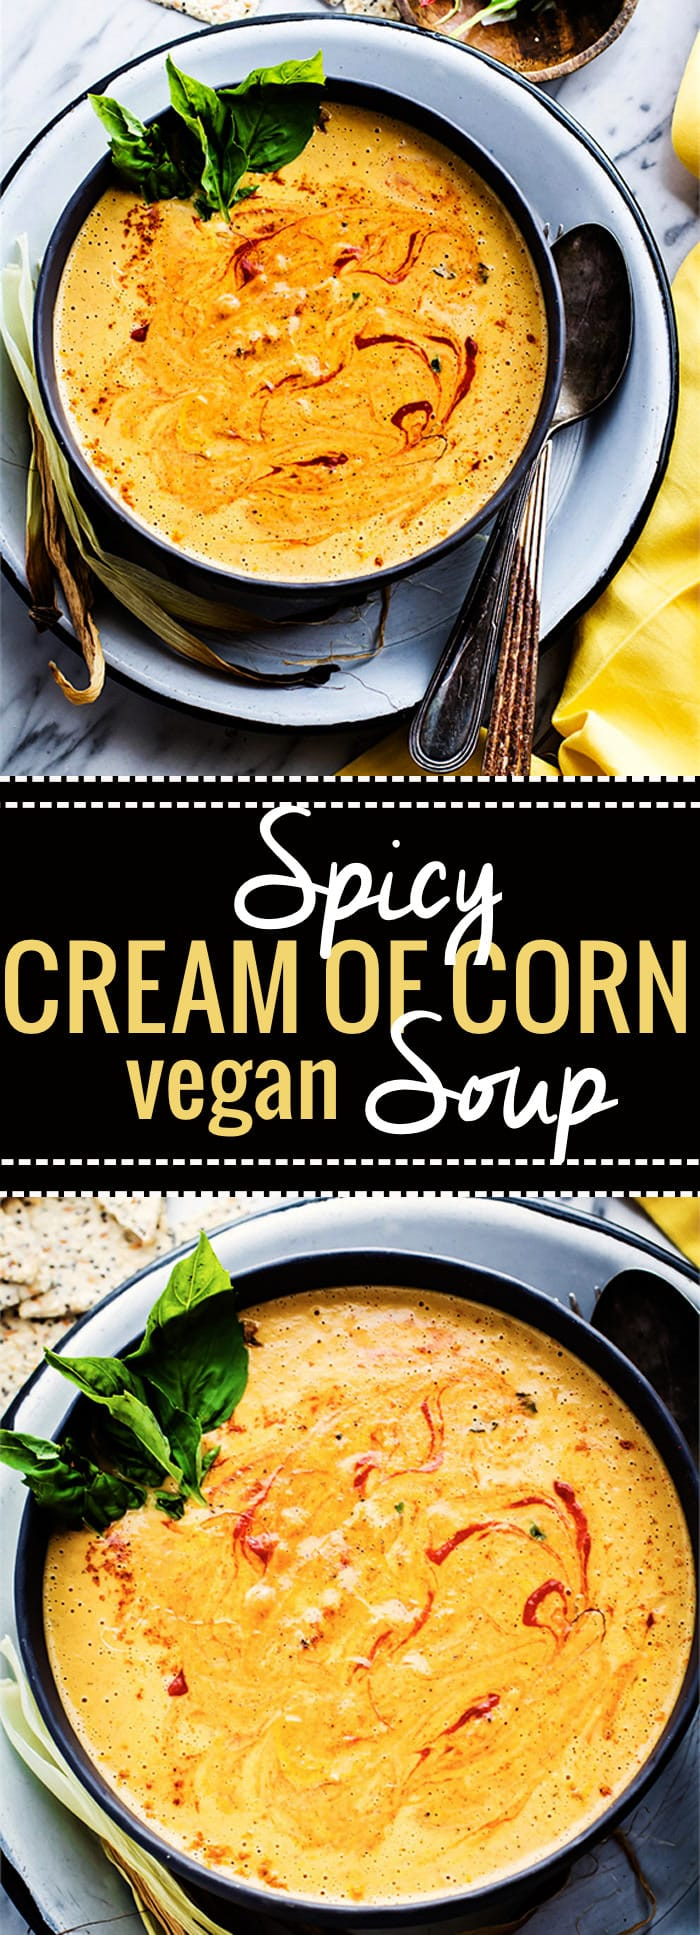 Spicy Vegan Cream of Corn soup! A vegan cream of corn soup that's nourishing, flavorful, and gluten free! So easy to make. Just roast then toss in a blender. Perfect vegetarian dish for anytime of year. Serve warm or chilled. Ready in 35 minutes and super tasty!! @cottercrunch